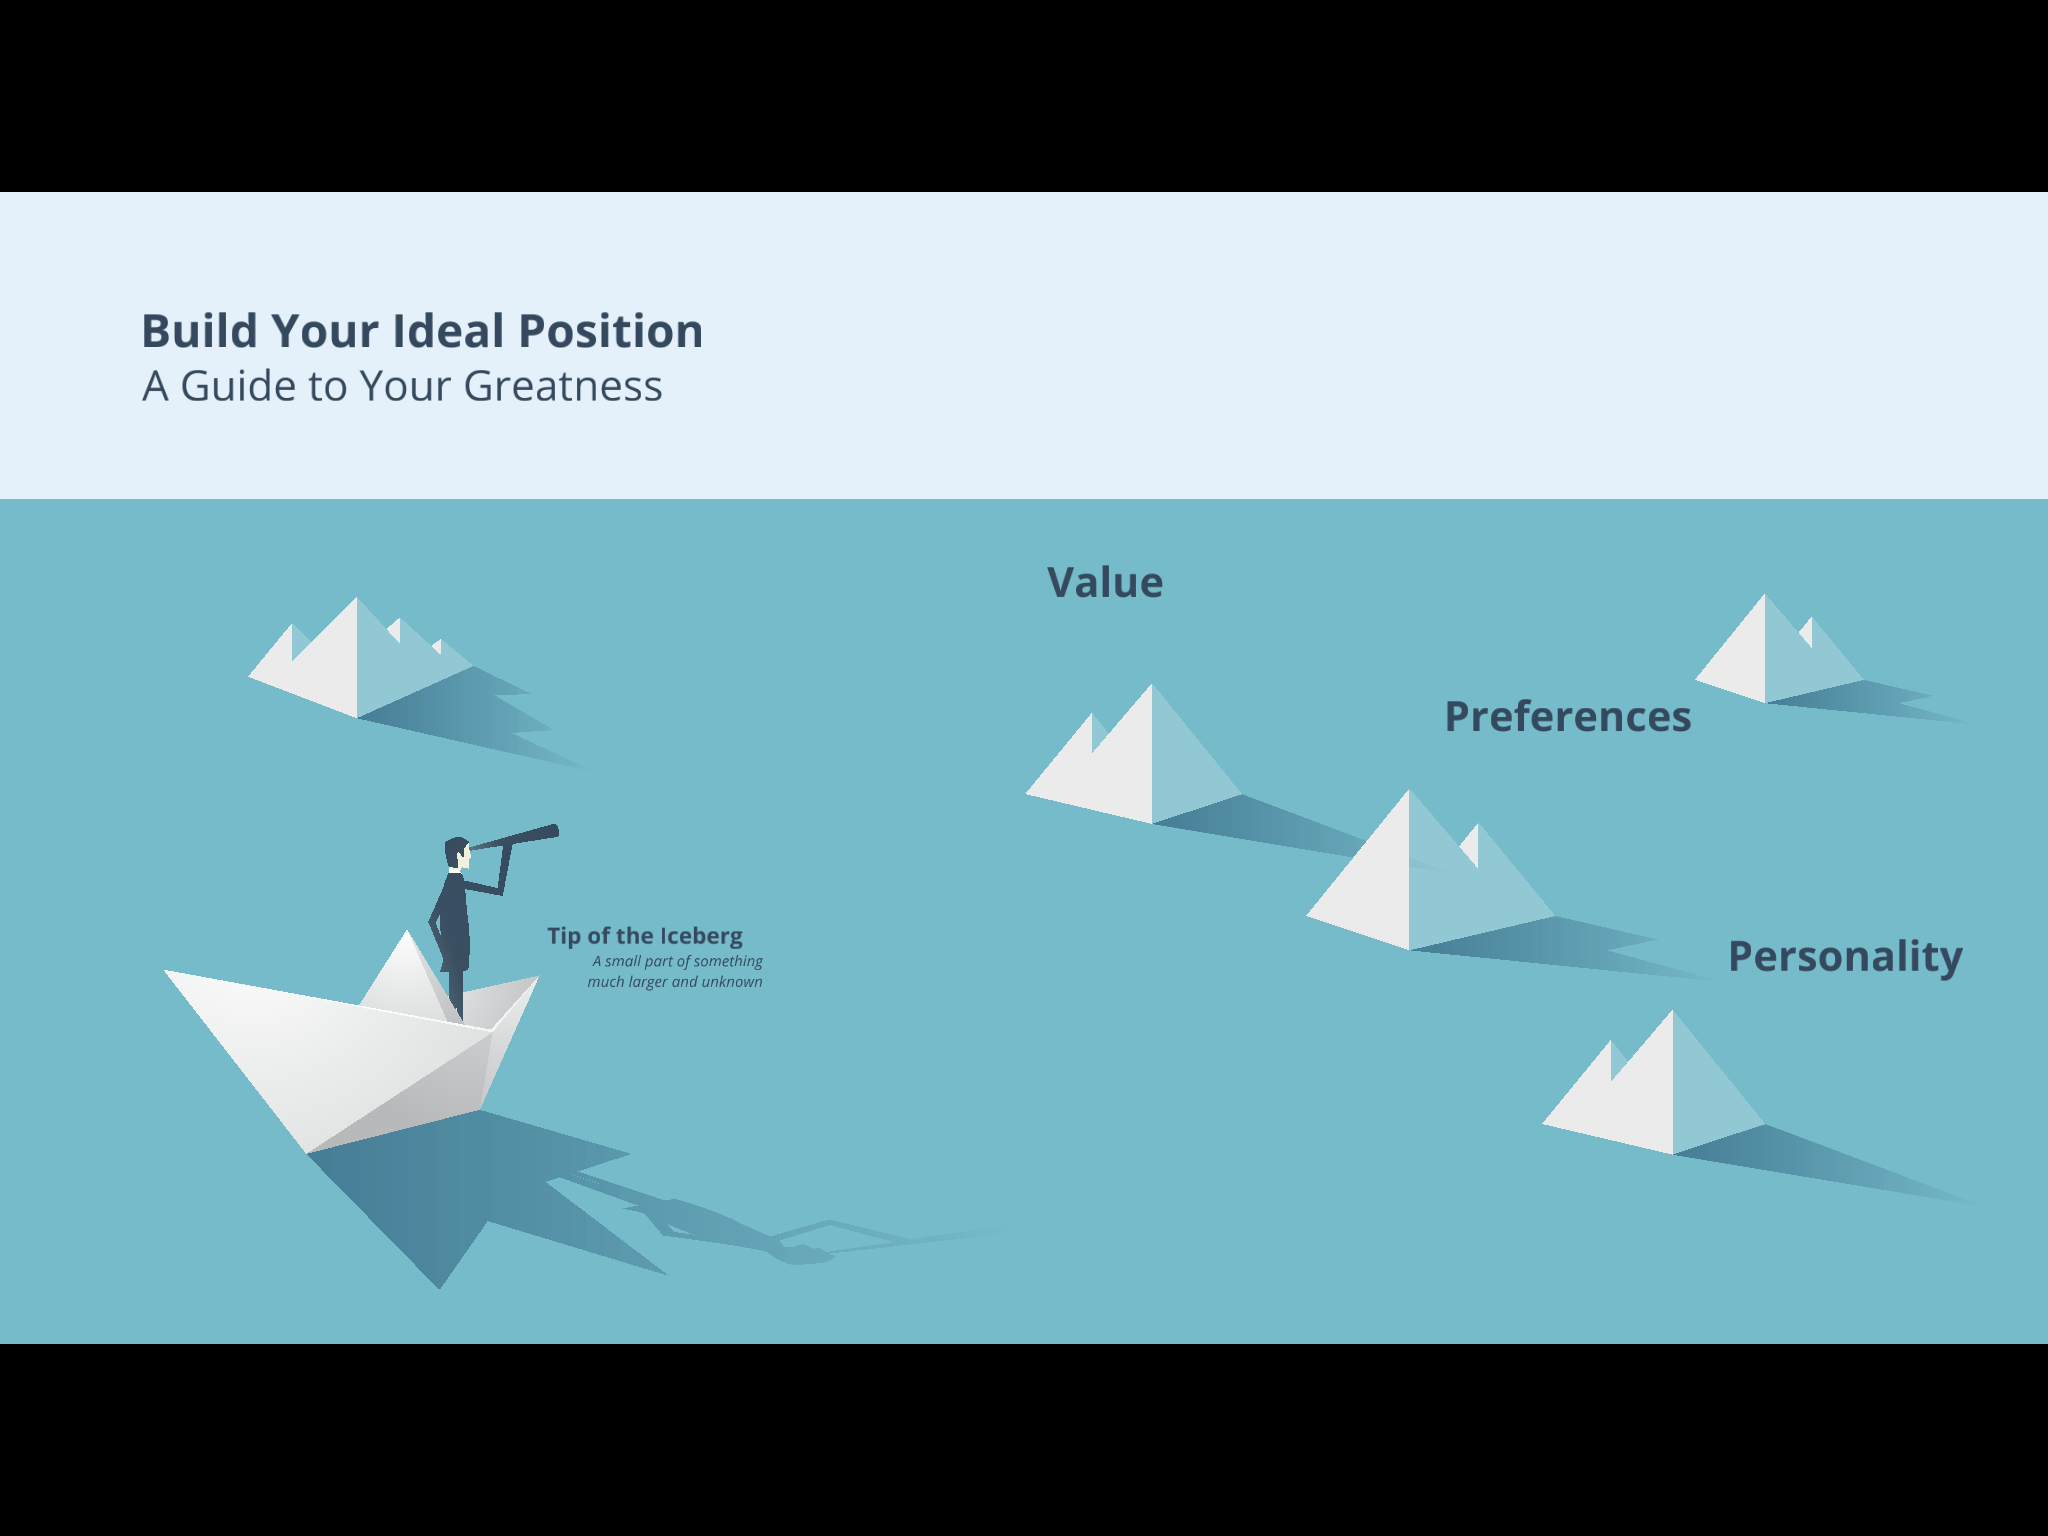 Build Your Ideal Position